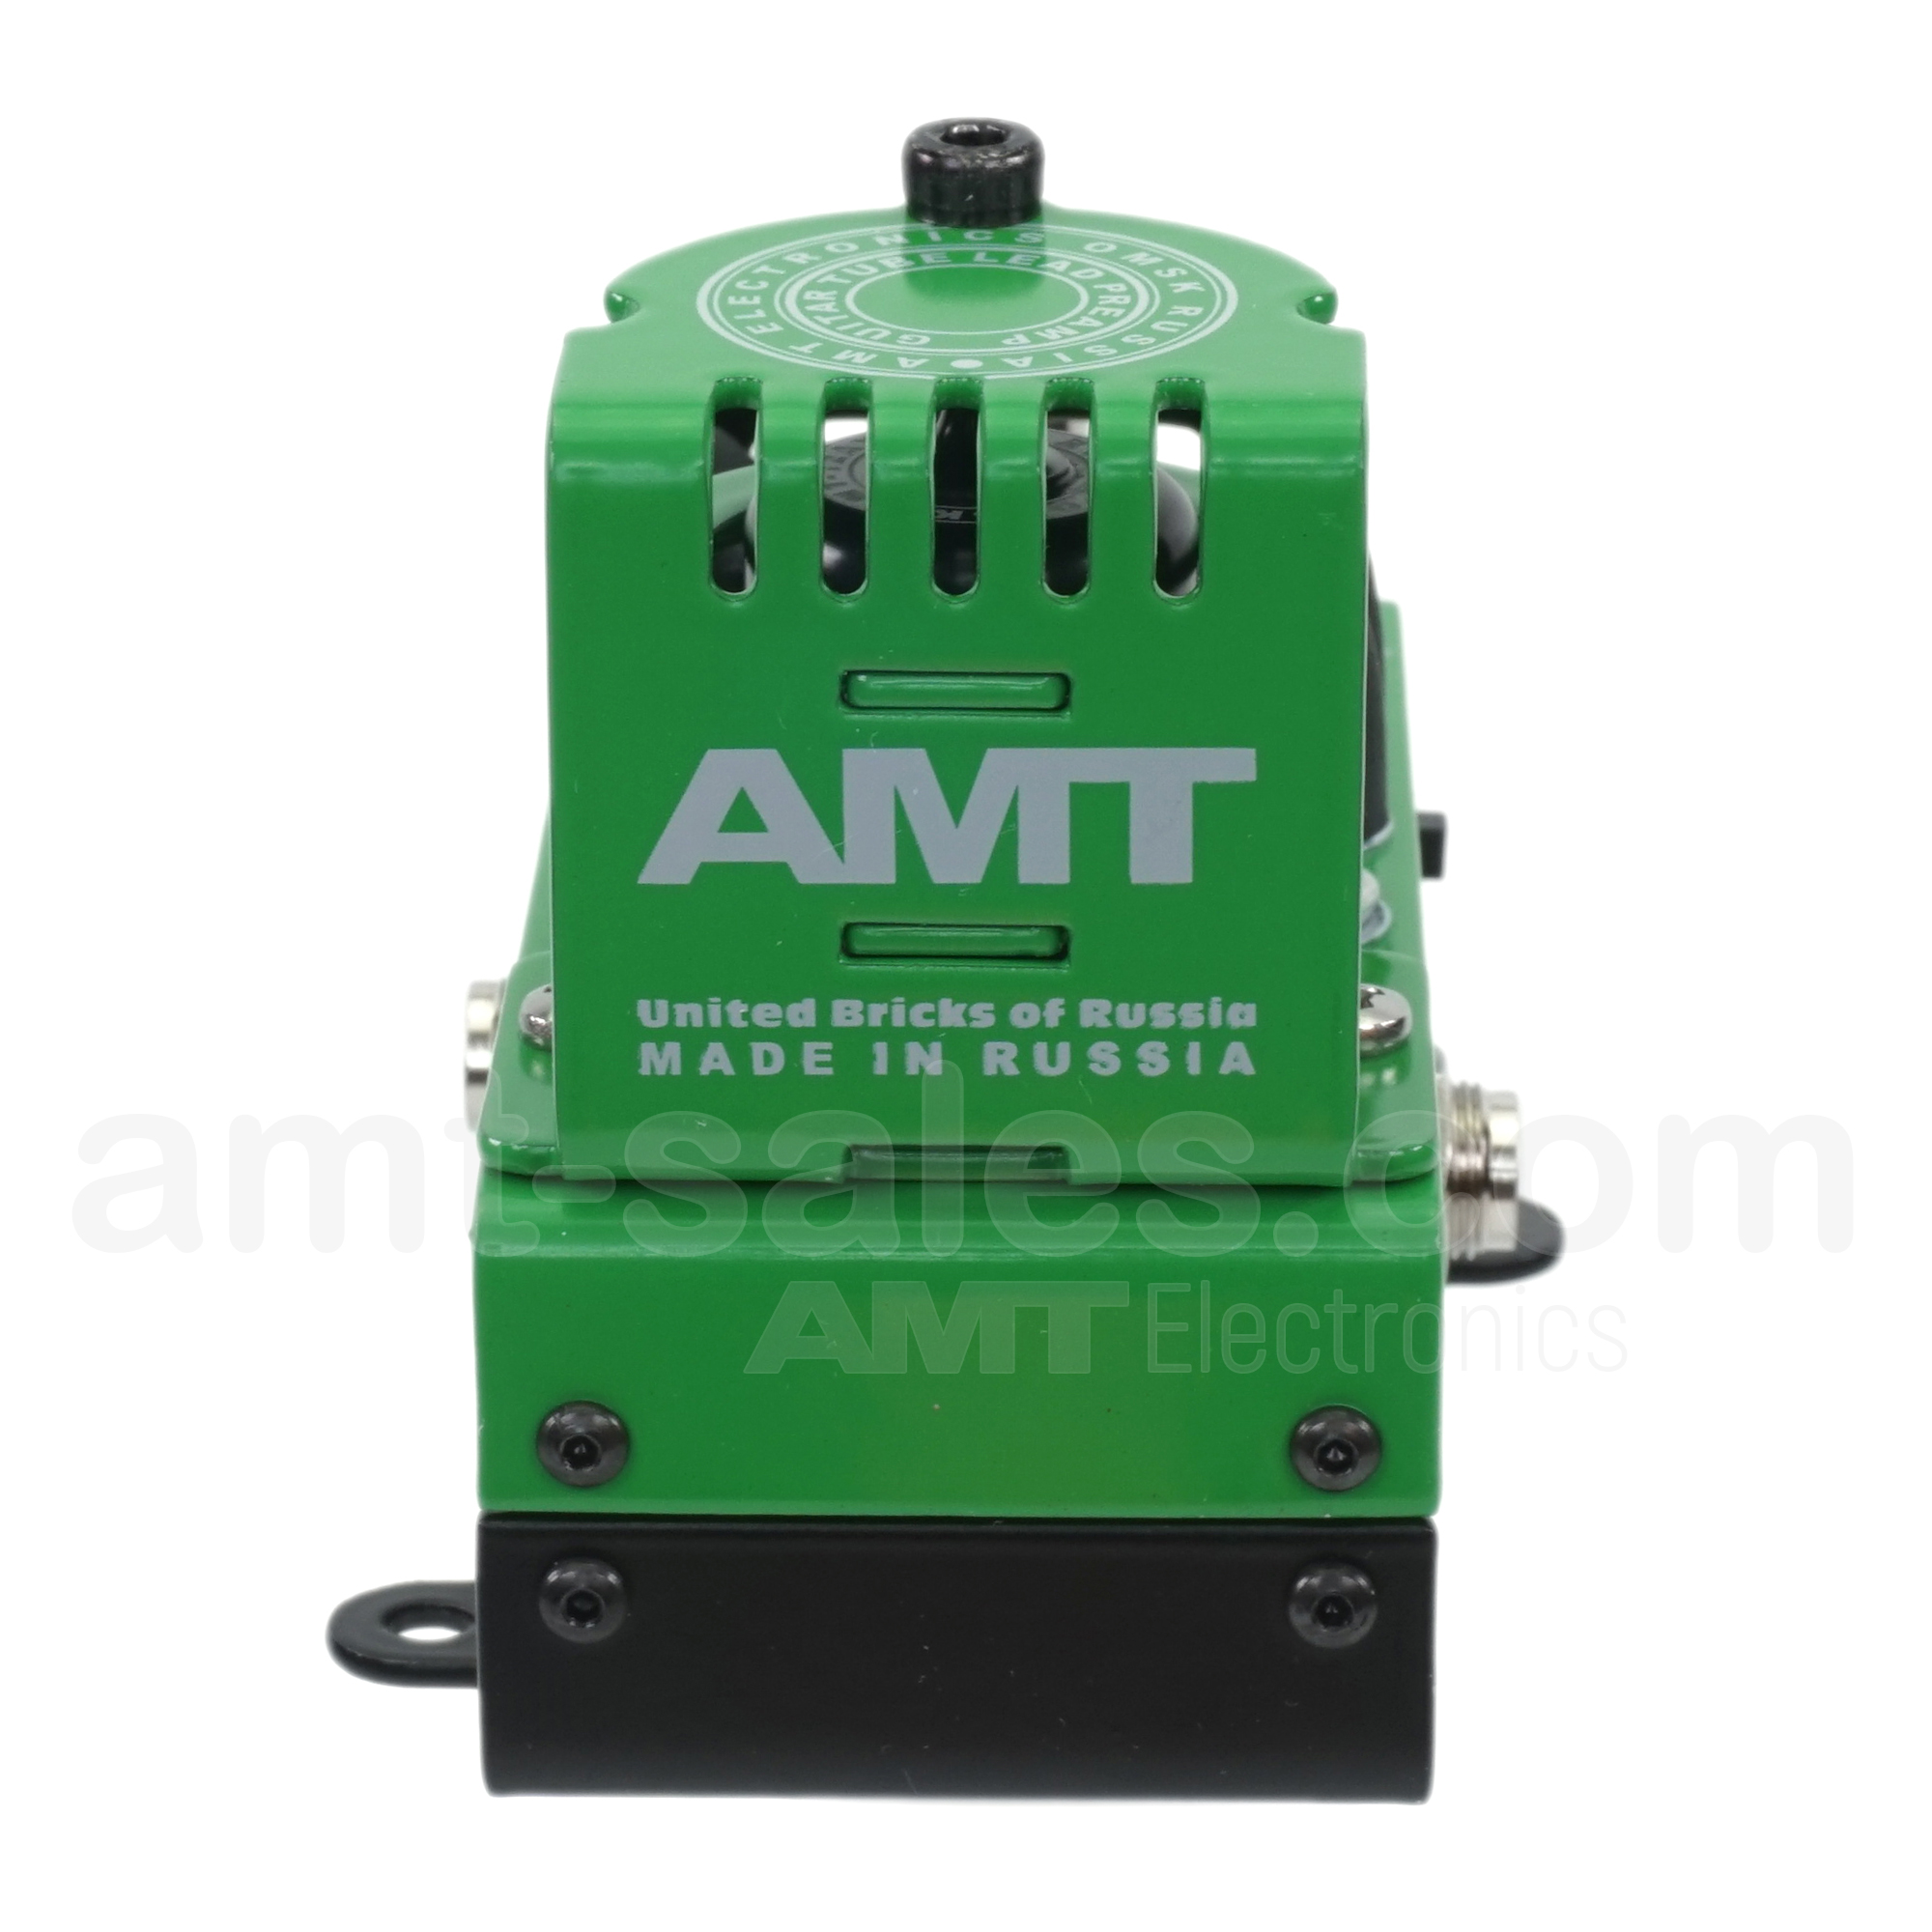 AMT Bricks M-Lead - JCM800 Emulates